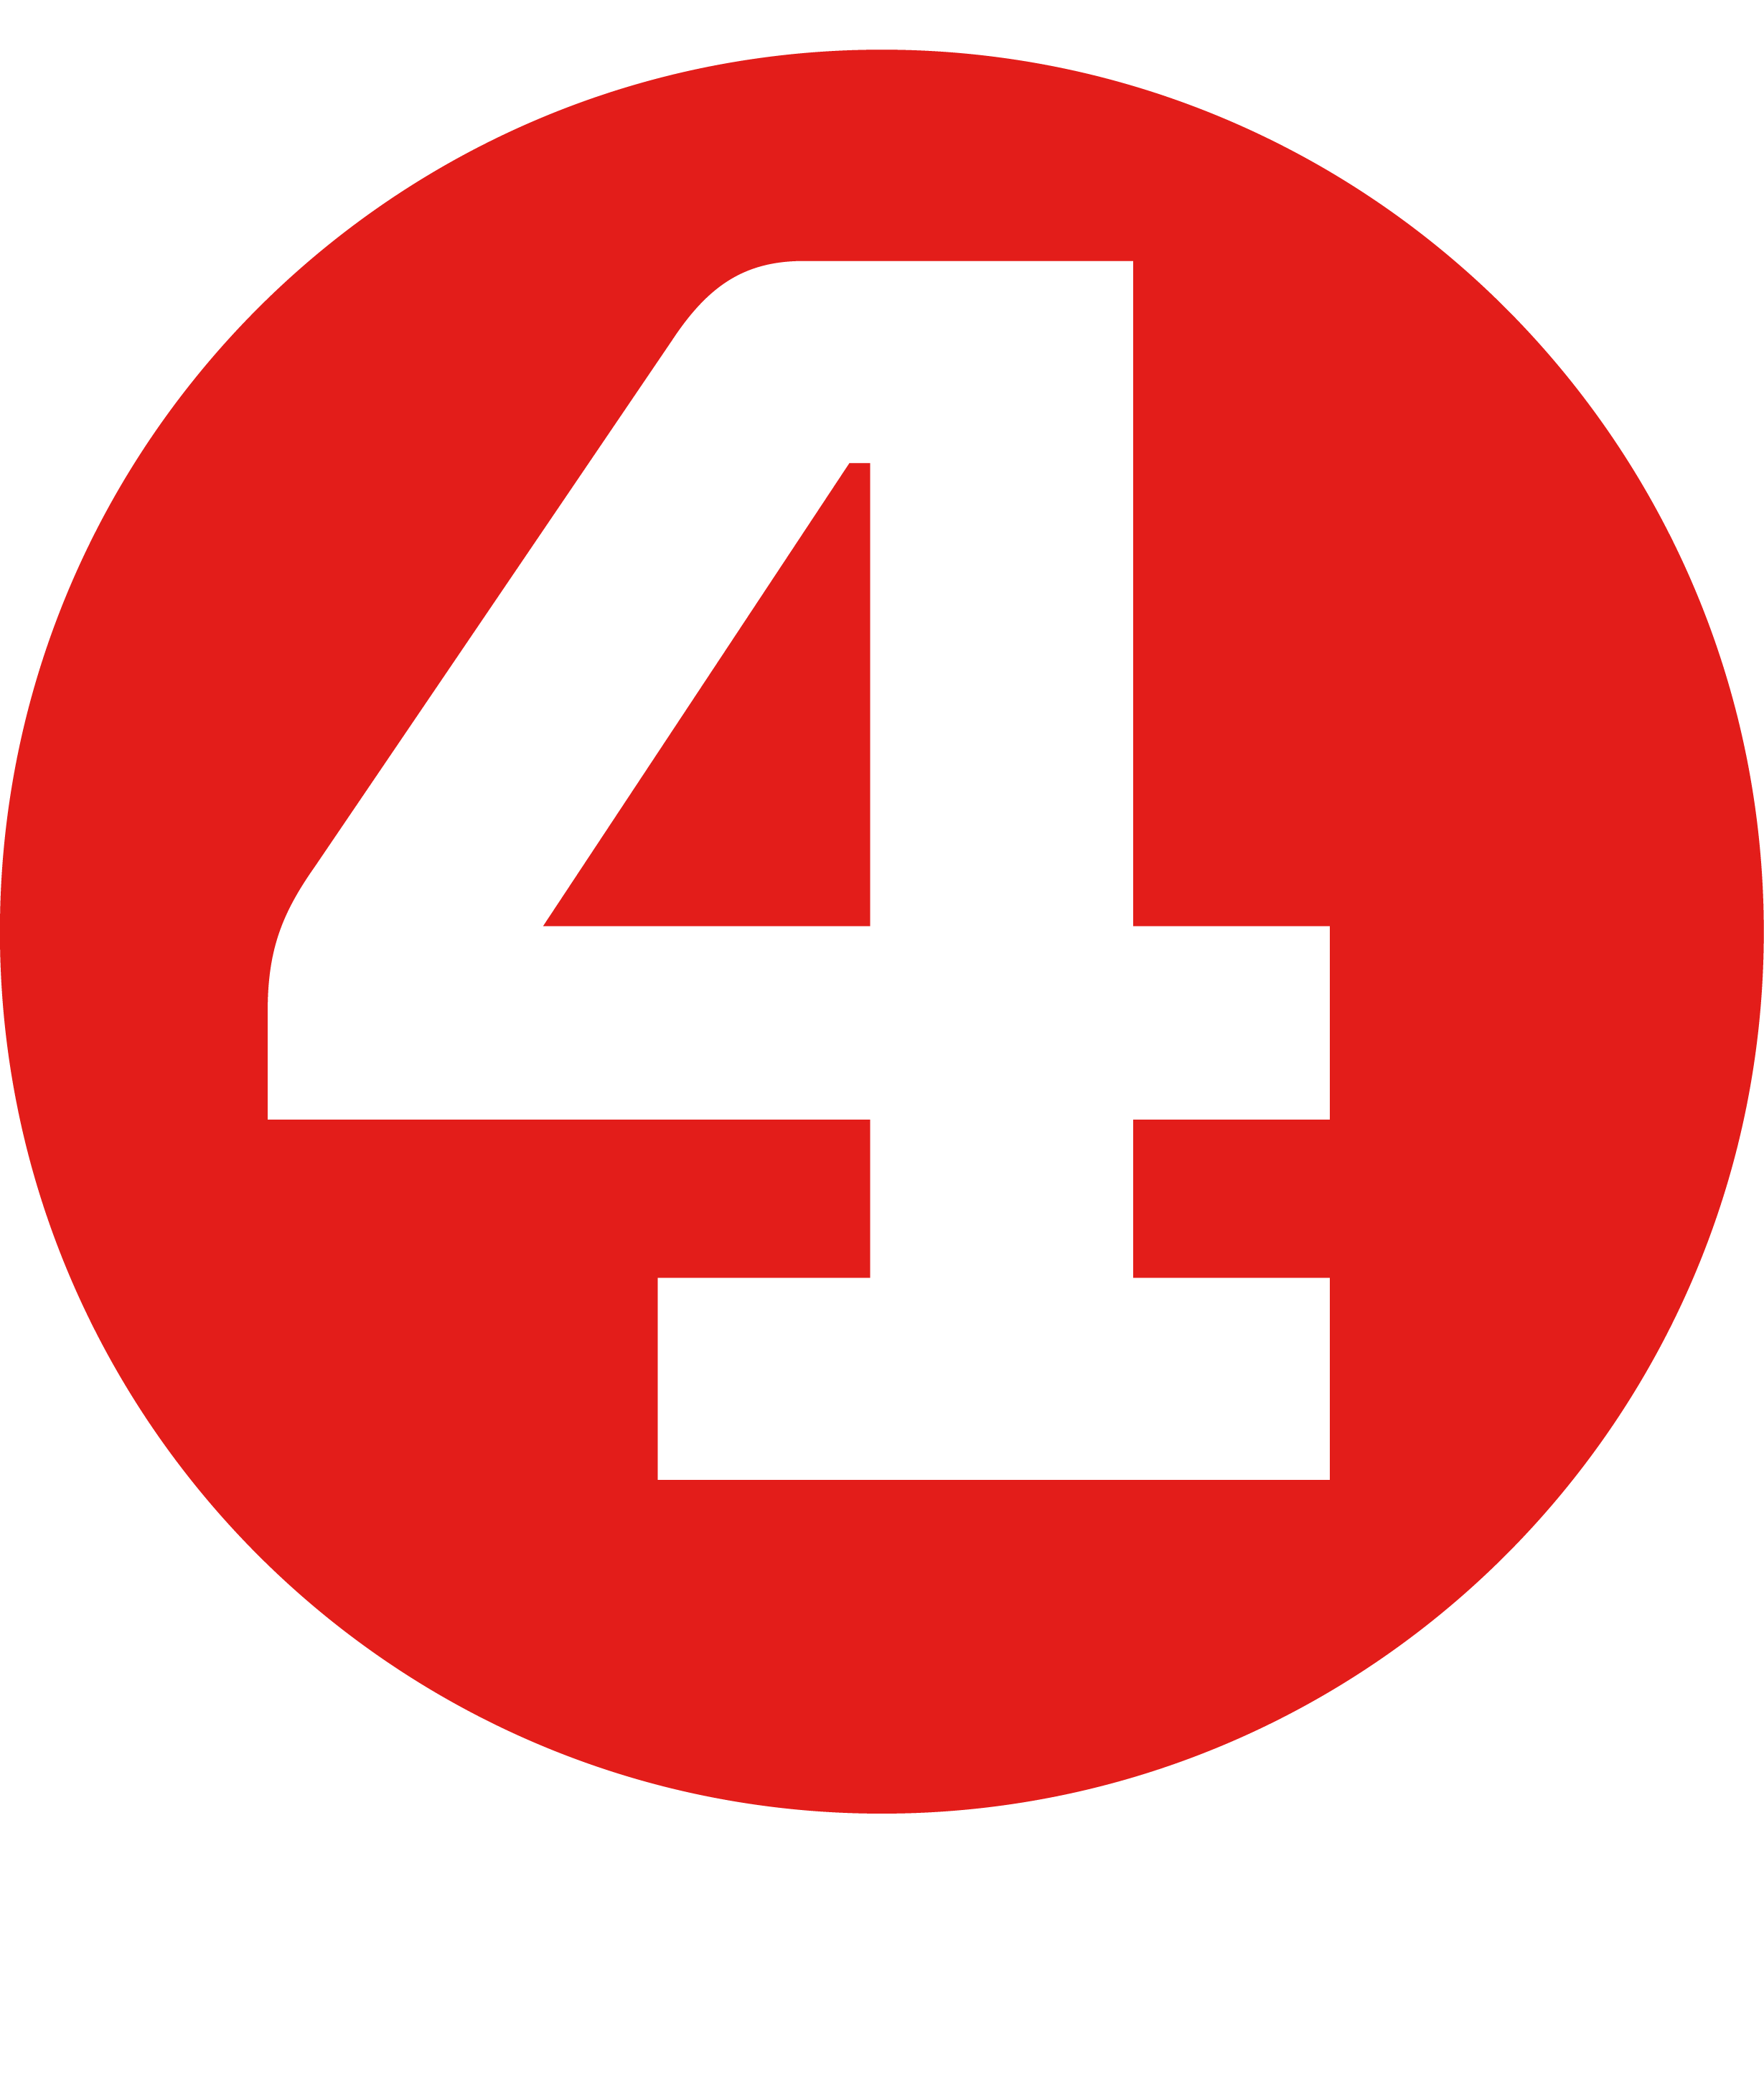 Number 4 Clipart Red  Number 4 Red Transparent Free For